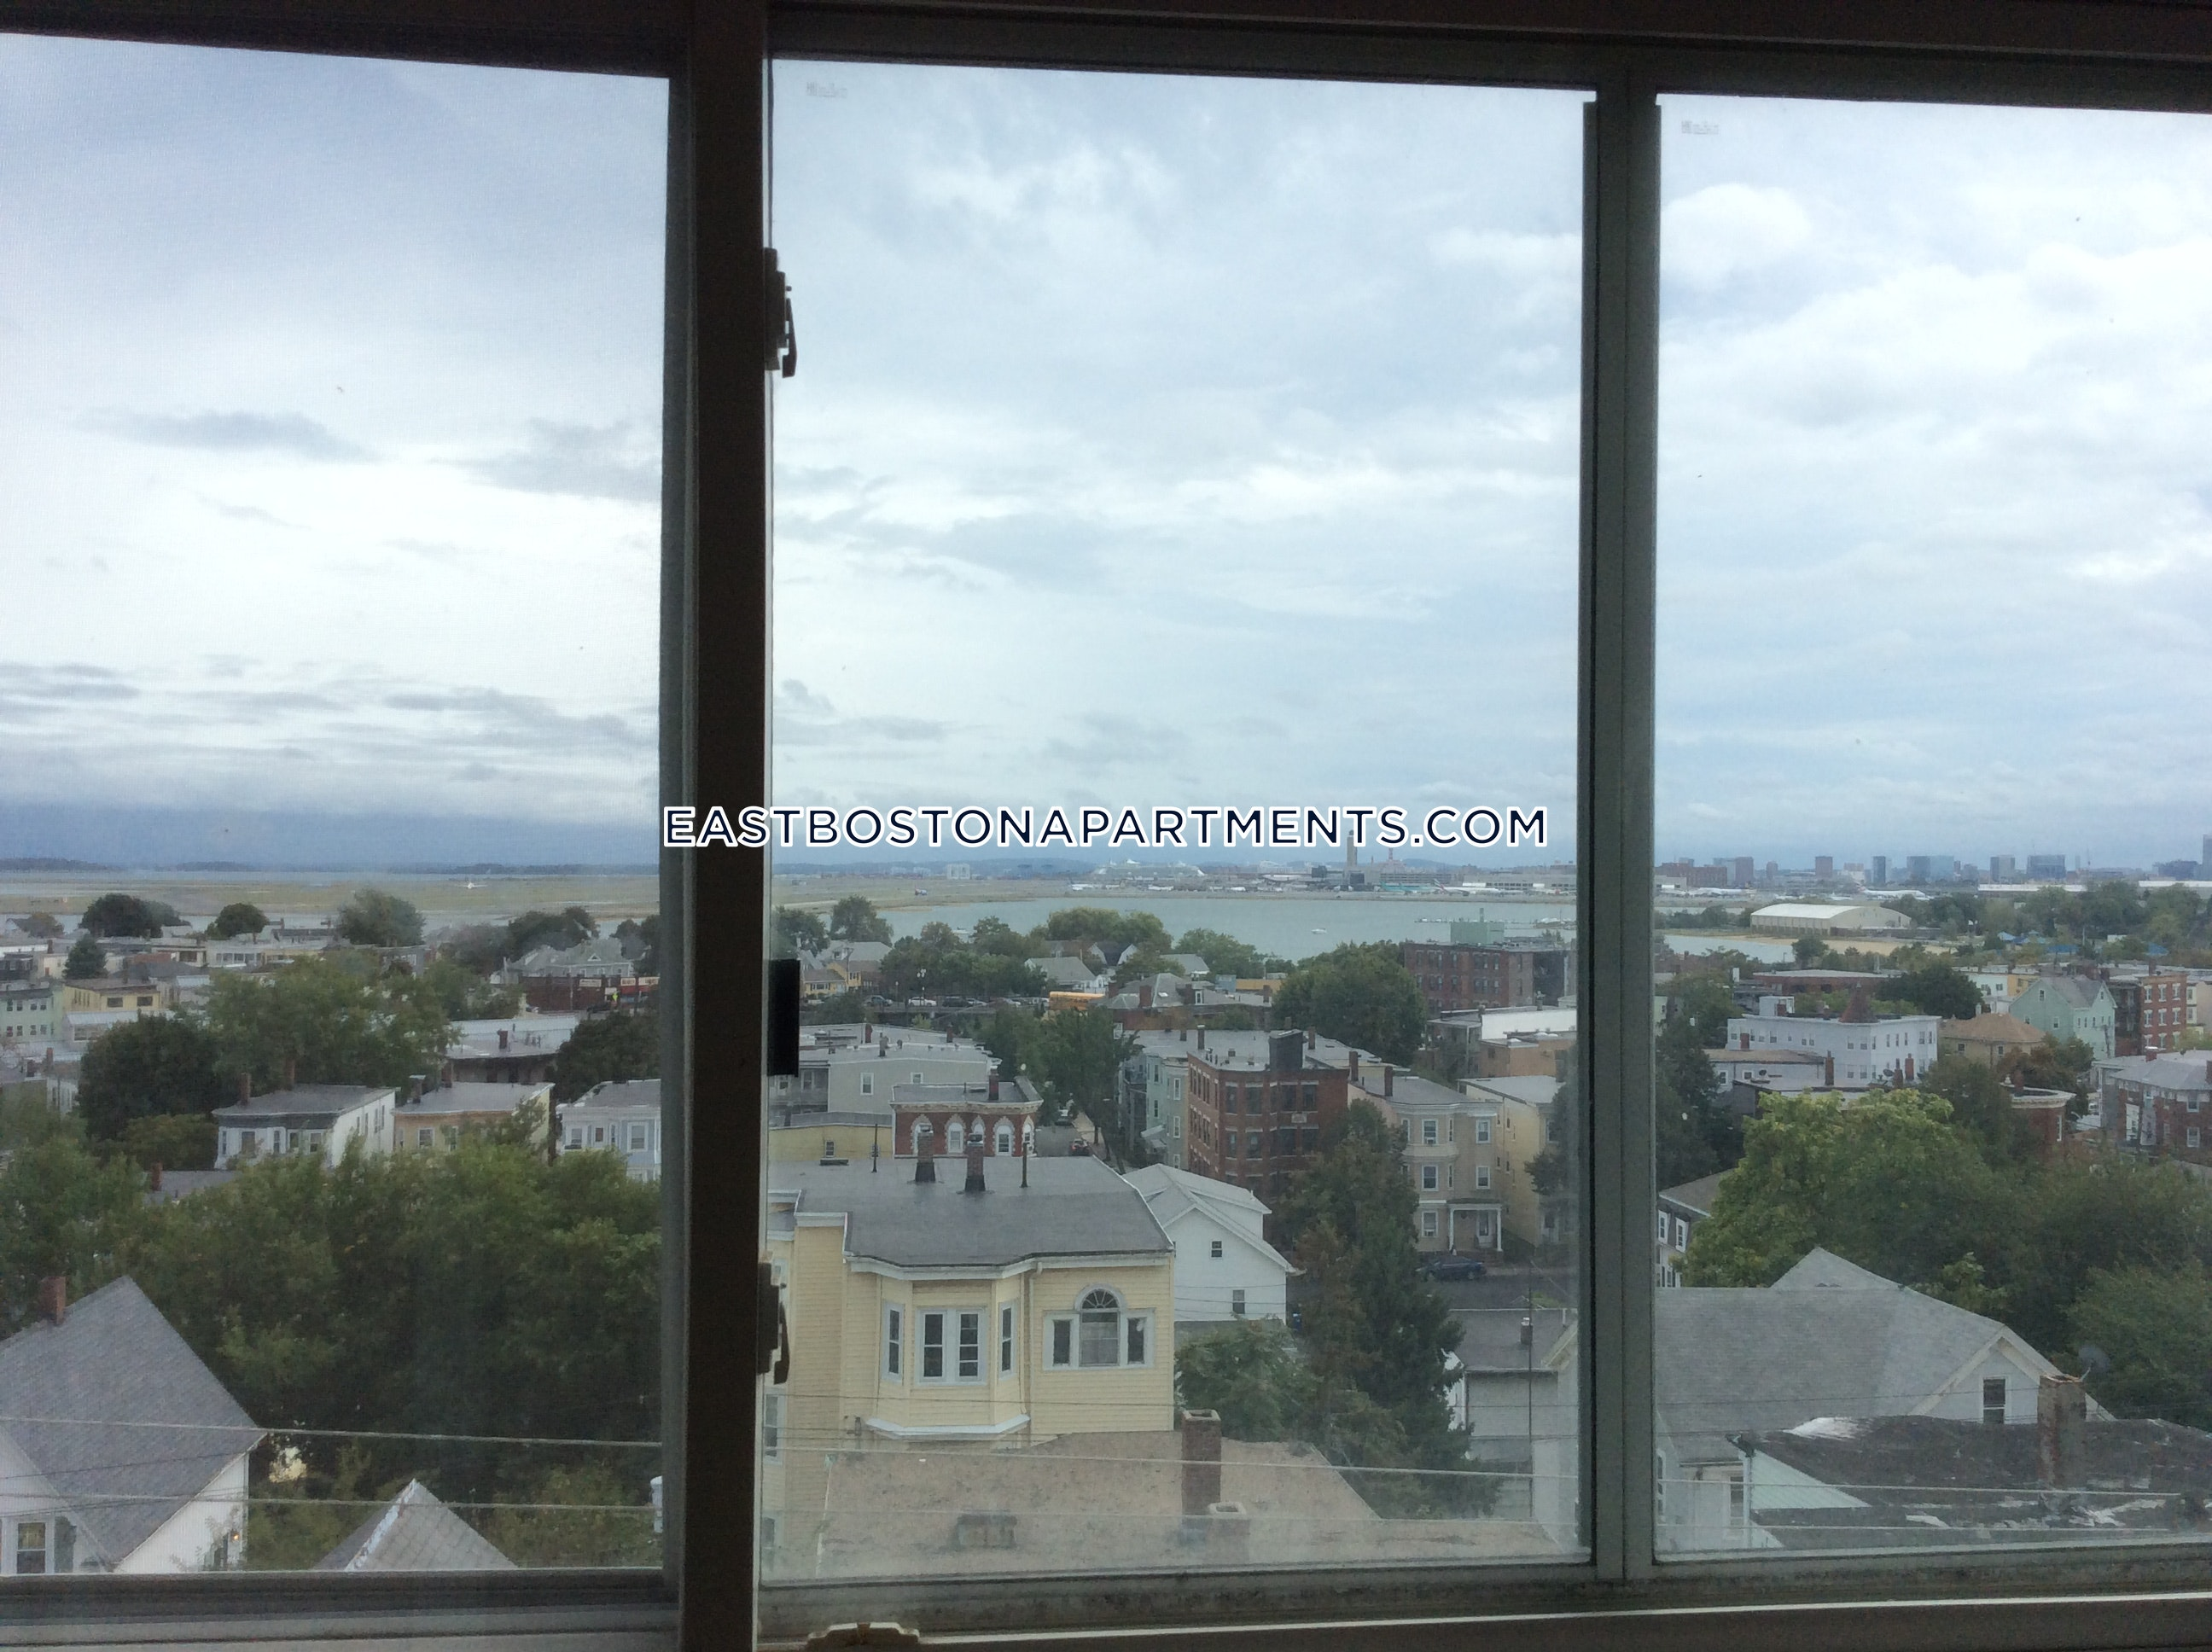 Newly renovated 4 bedrooms 1 bathroom in East Boston $2,700 - Boston - East Boston - Orient Heights $2,700